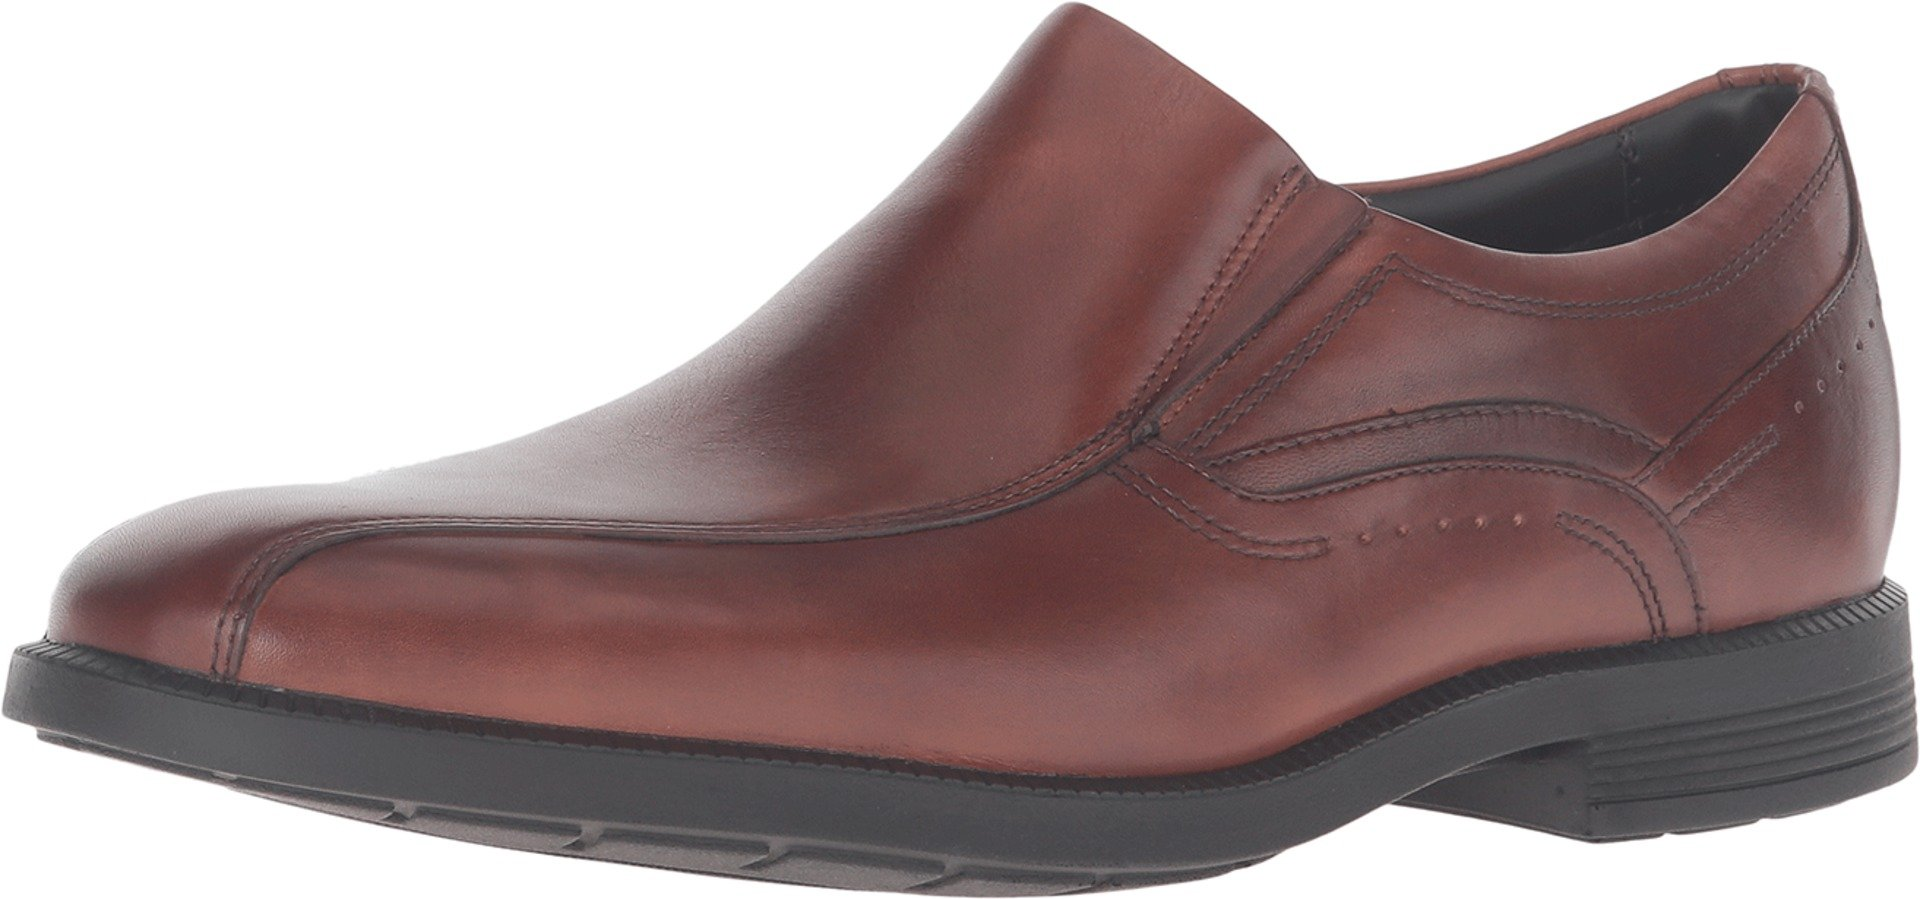 Rockport Men's Dressports Business Bike Toe Slip On,New Brown Leather,US 15 M